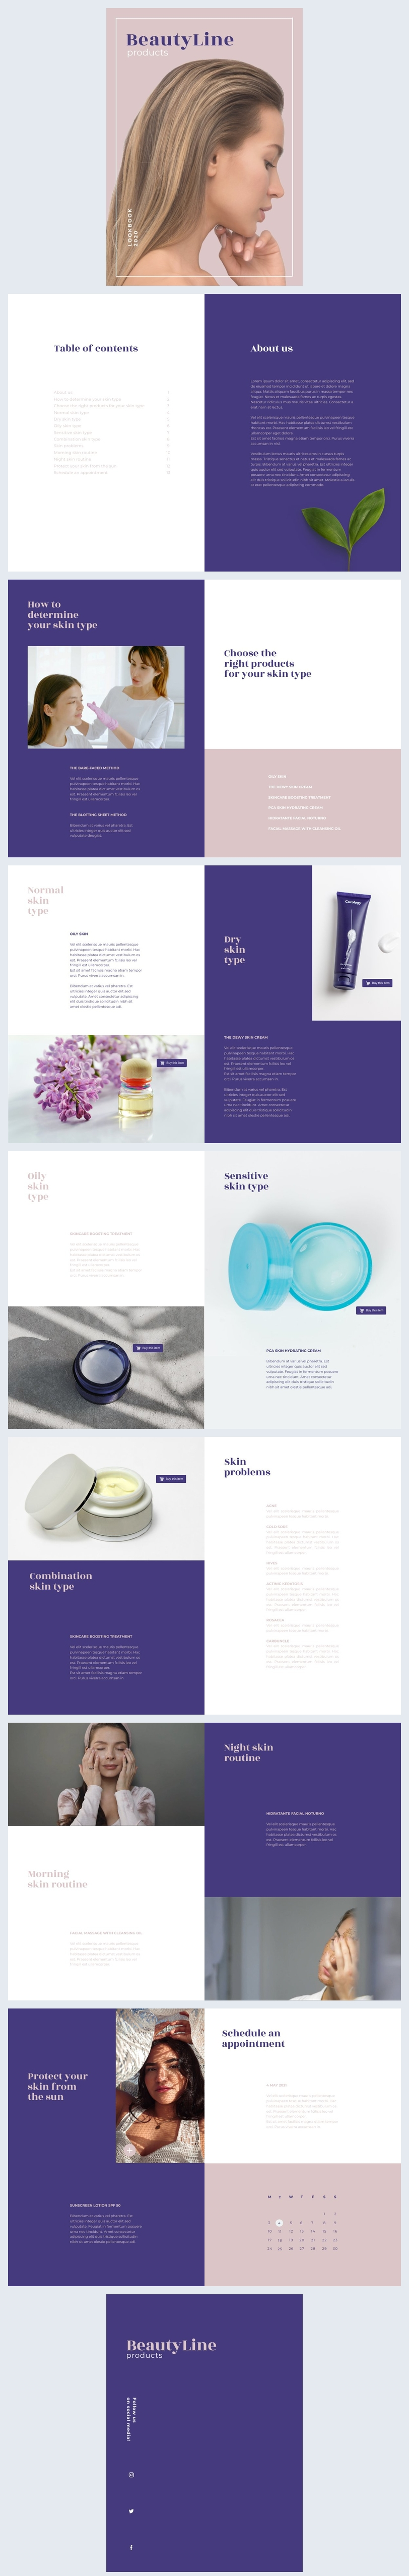 Interactive Beauty Products Catalog Design